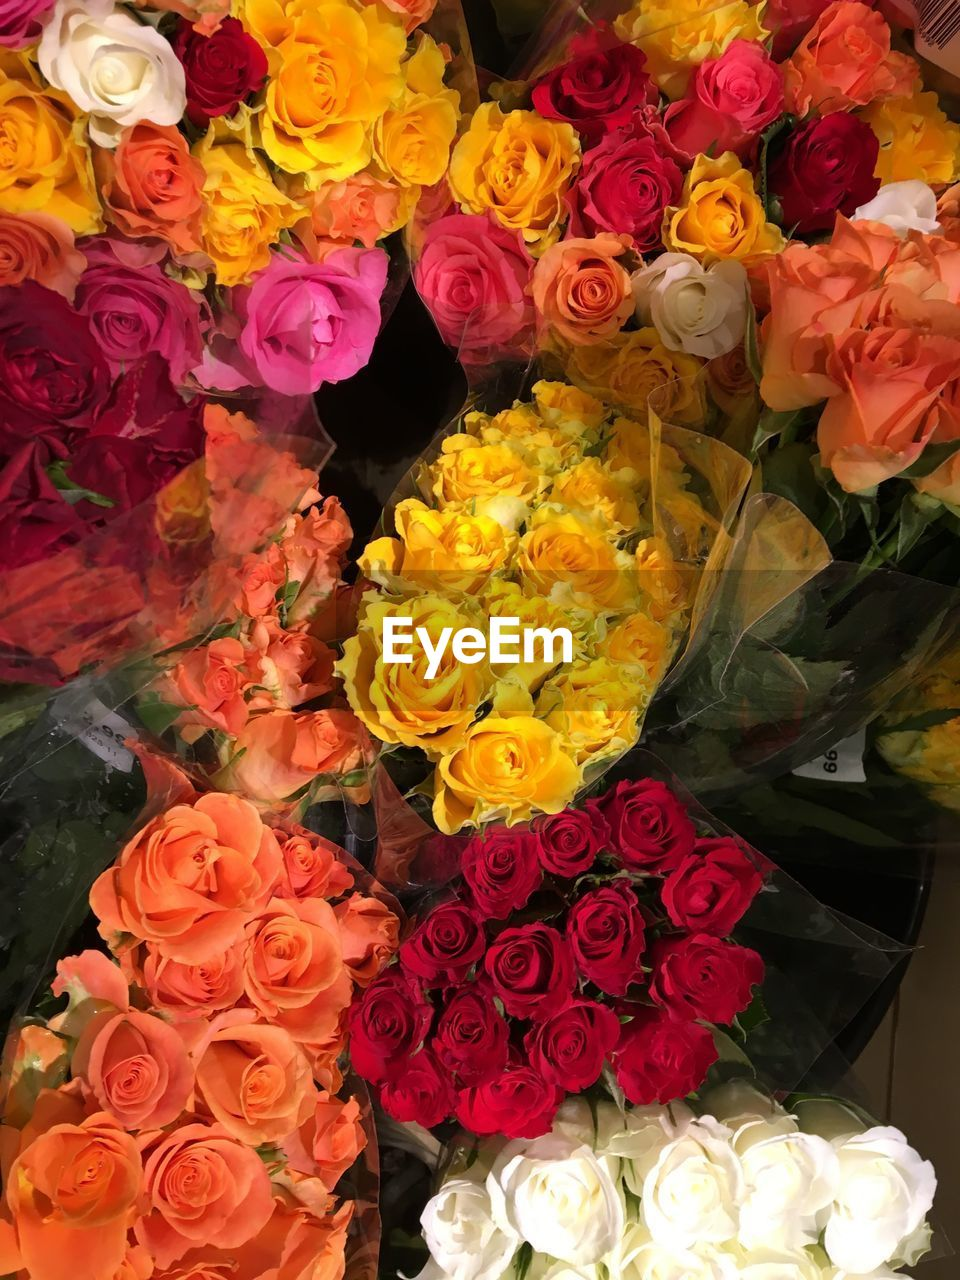 flower, multi colored, variation, retail, rose - flower, bouquet, choice, for sale, flower market, fragility, flower shop, freshness, flower head, backgrounds, petal, no people, market, small business, indoors, beauty in nature, full frame, nature, day, close-up, florist